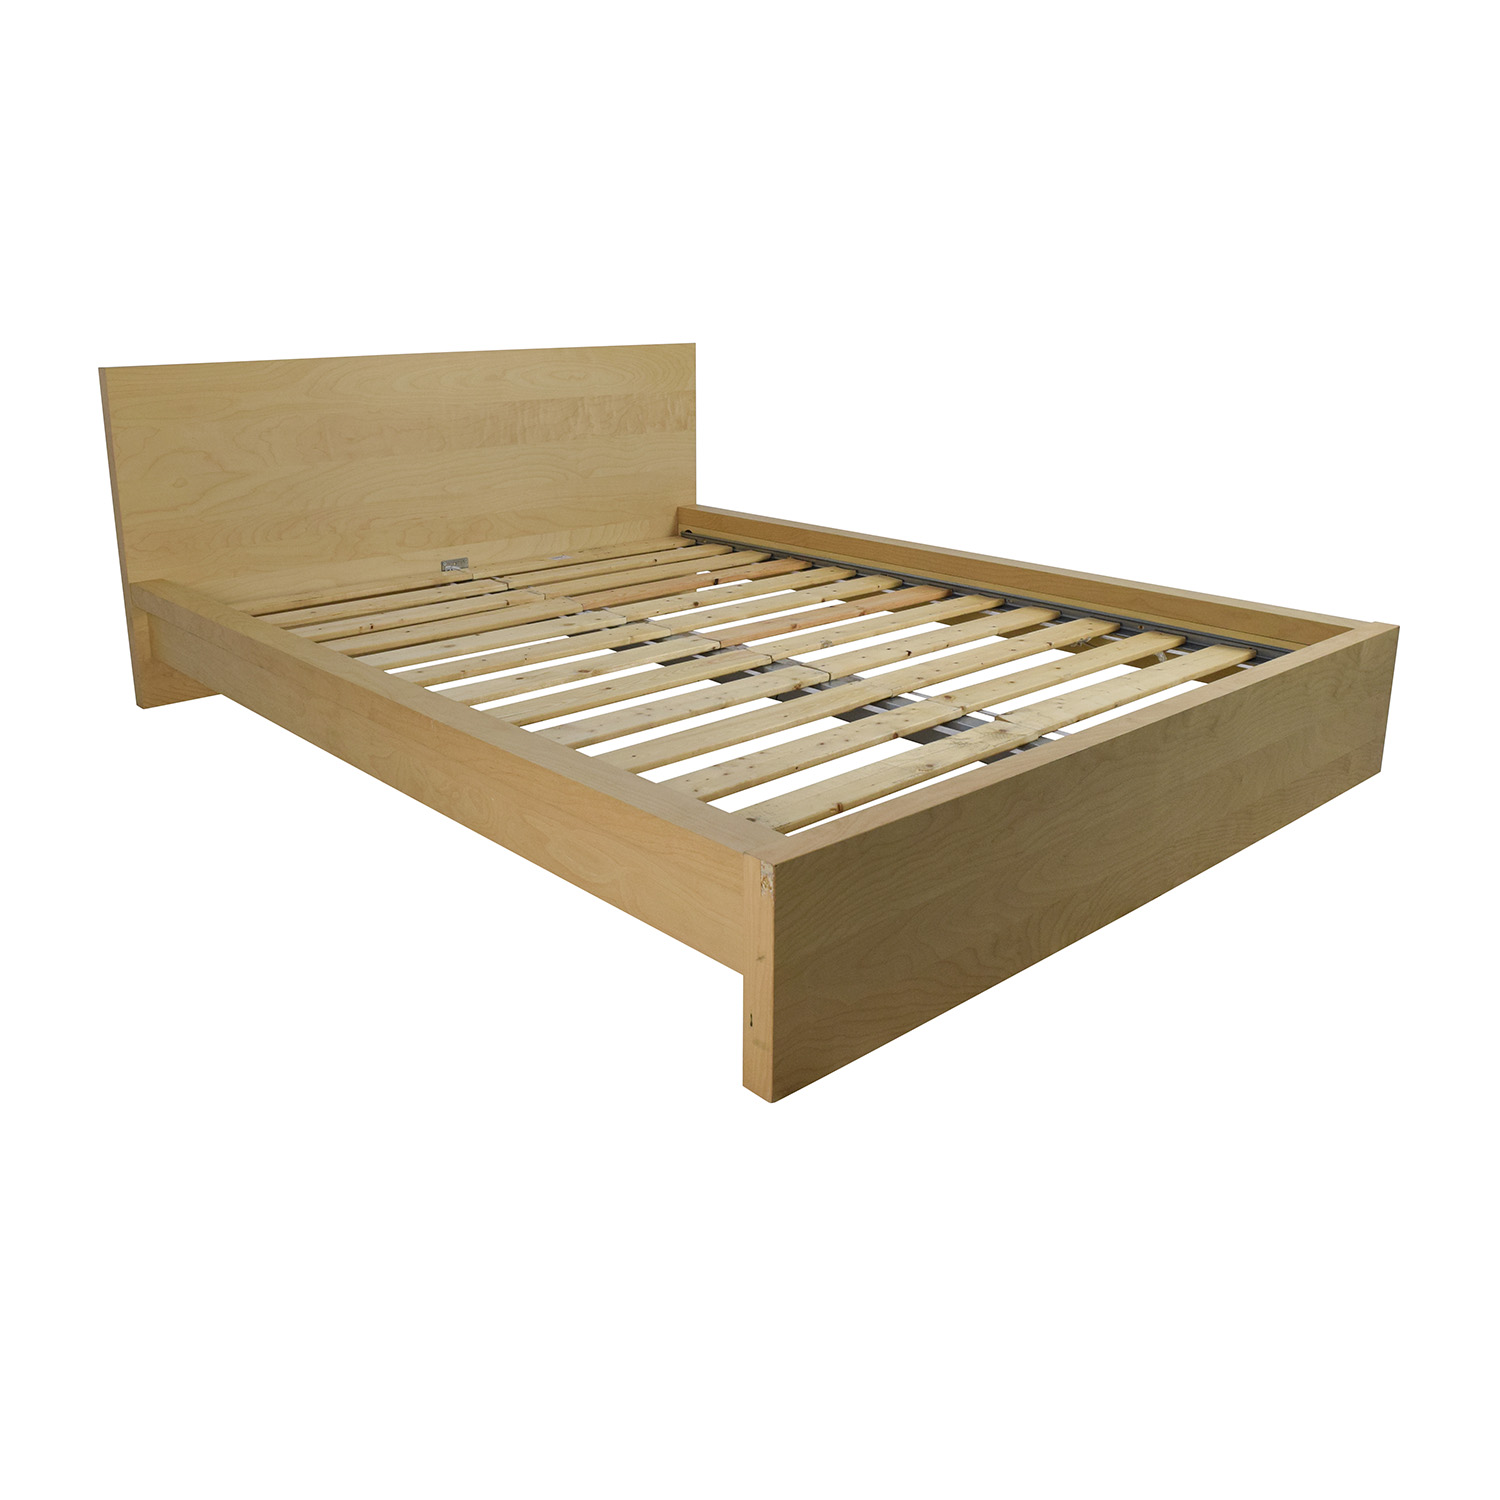 Ikea Sultan Queen Bed Frame Dimensions